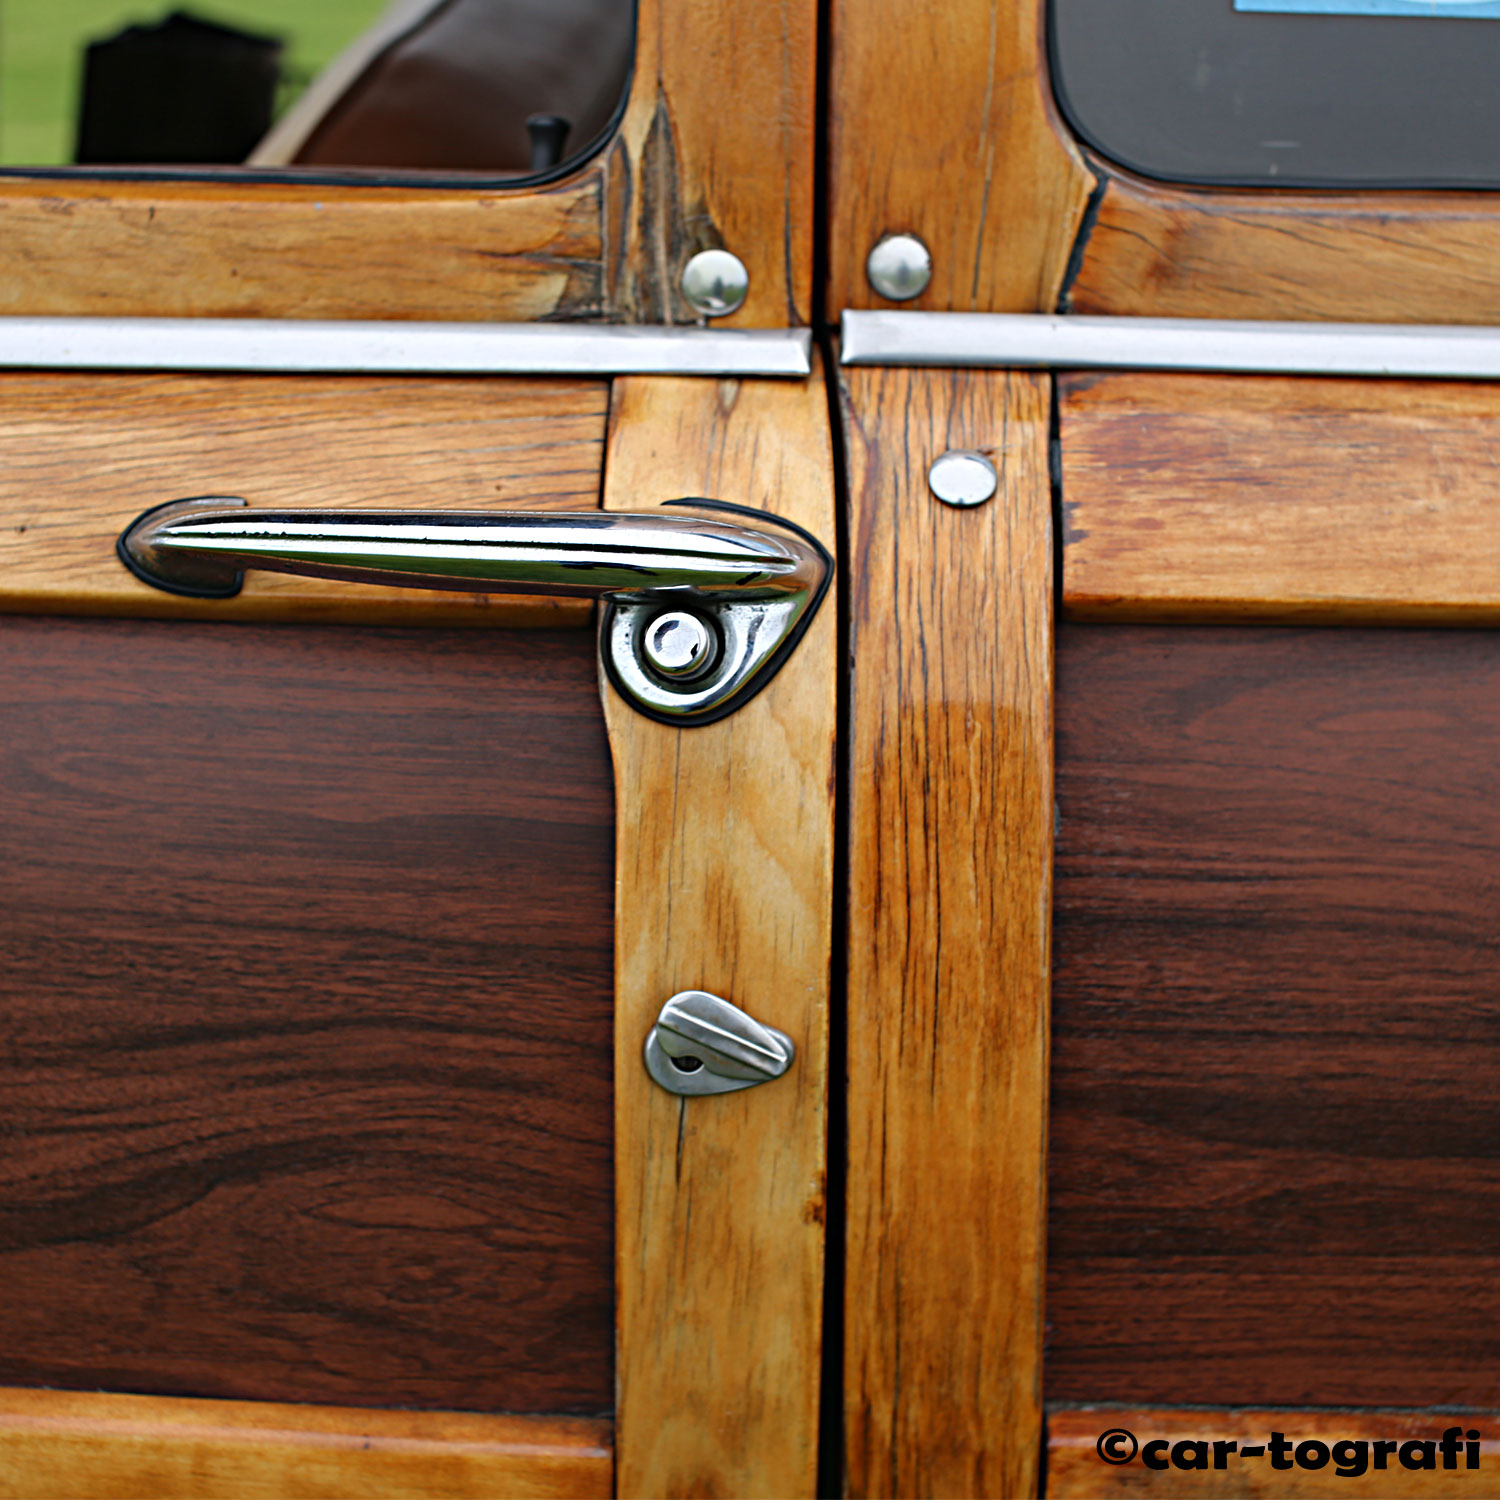 woodie-at-the-beach-panels-car-tografi-wb.jpg